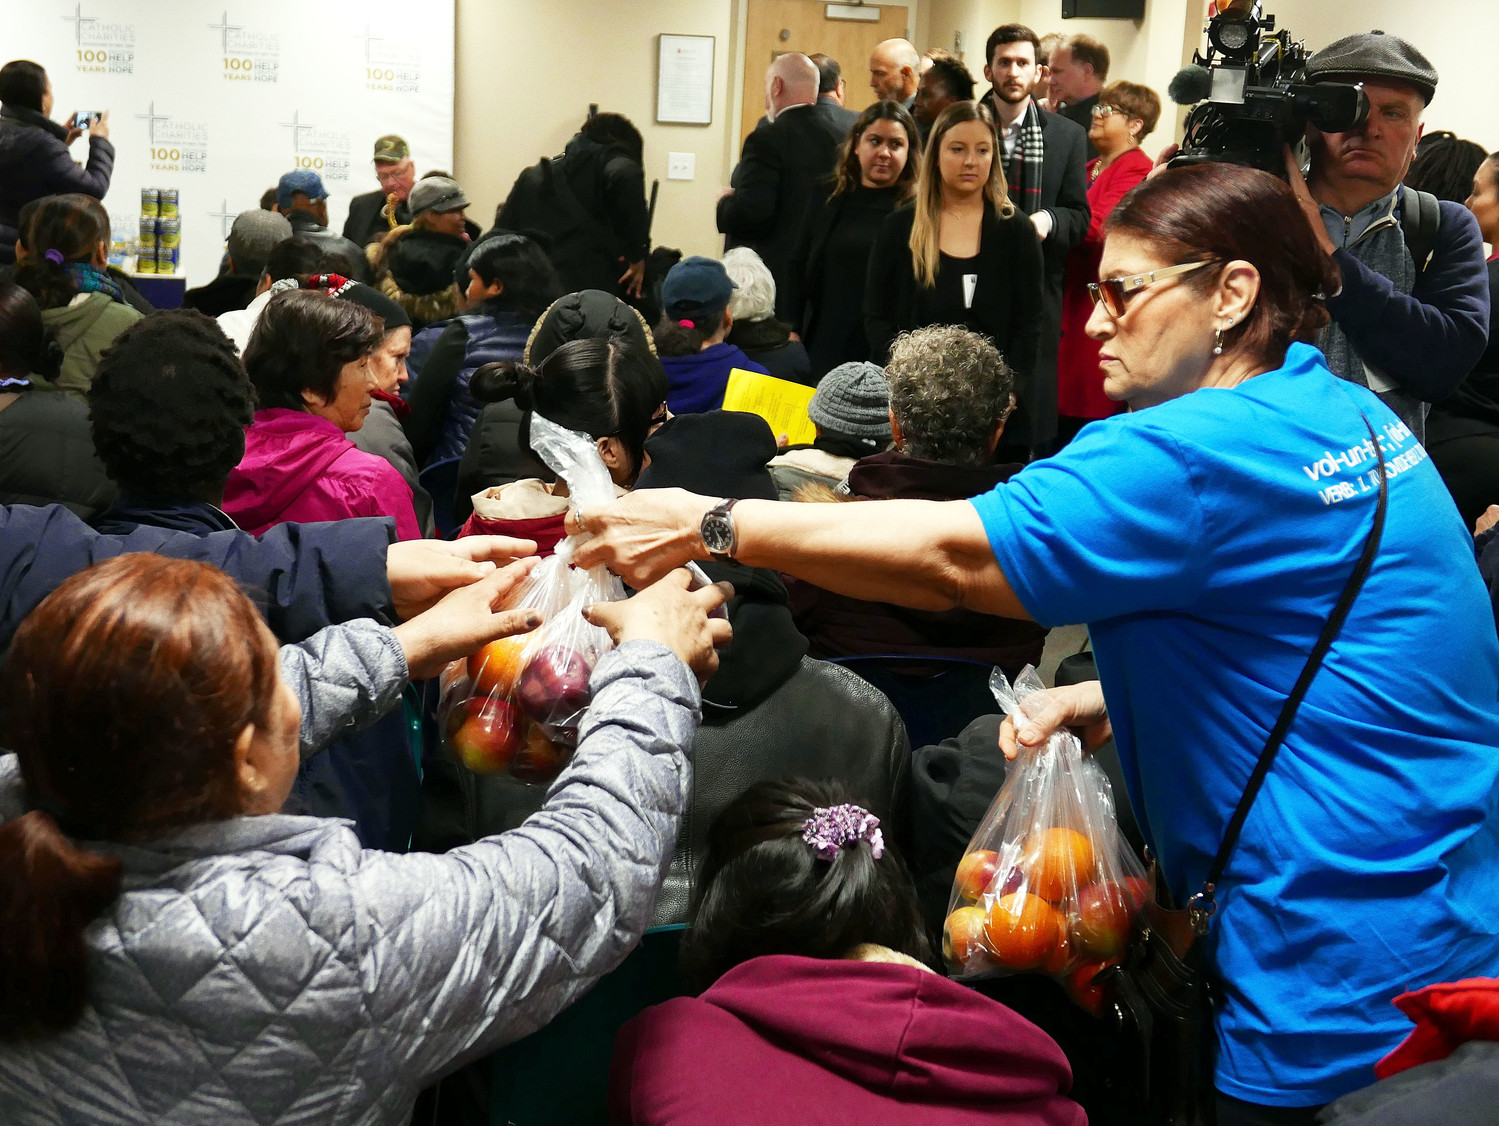 A volunteer hands out a bag of apples at Cristo Rey.